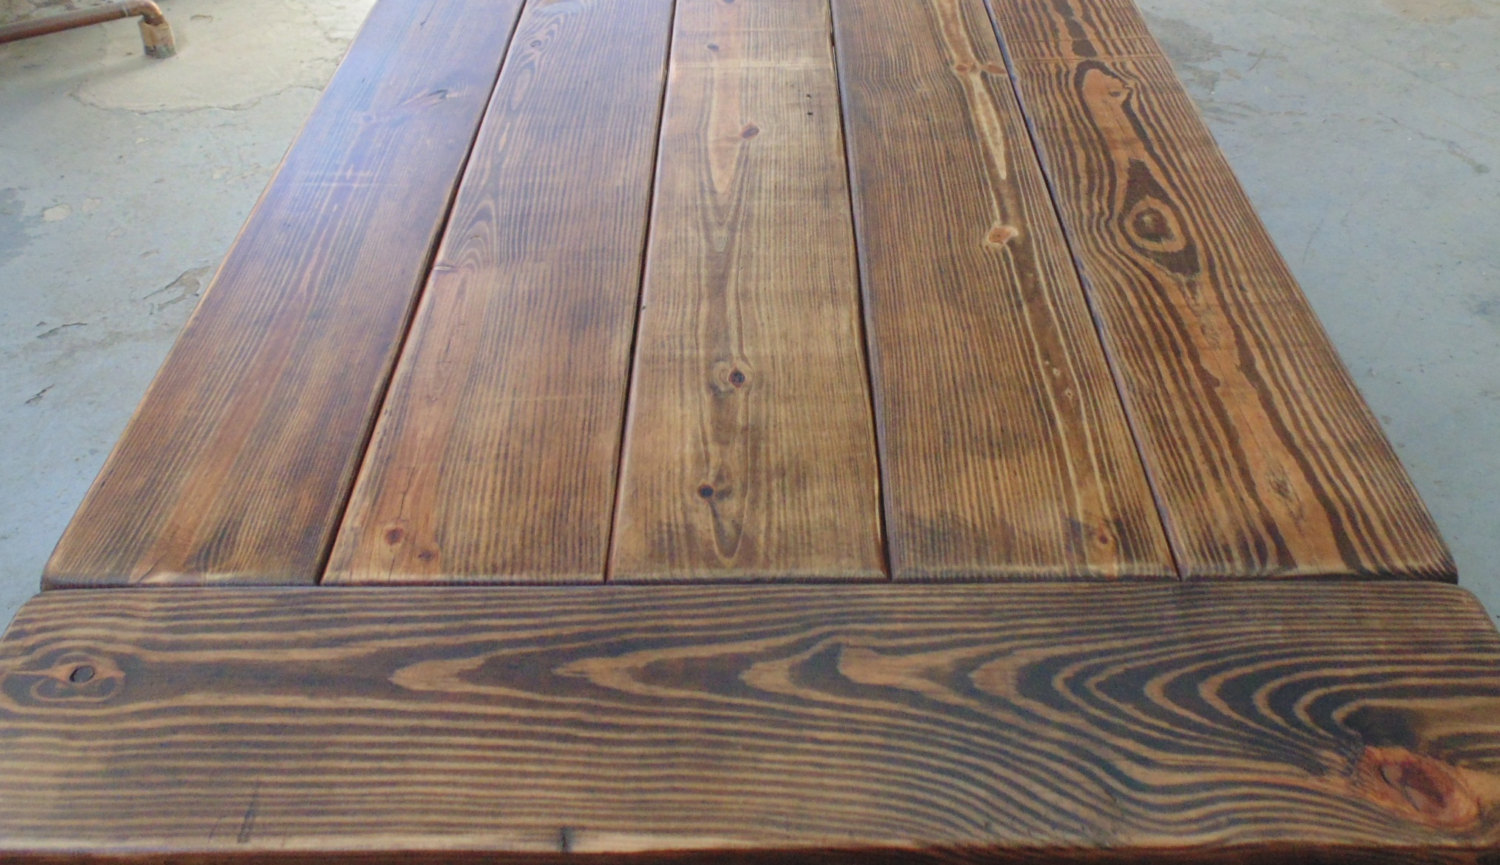 Talbot Dining Table  Farmhouse  Reclaimed Wood  Custom  Handcrafted   Handmade  MadeTalbot Dining Table  Farmhouse  Reclaimed Wood  Custom  . Farmhouse Dining Table Made In Usa. Home Design Ideas